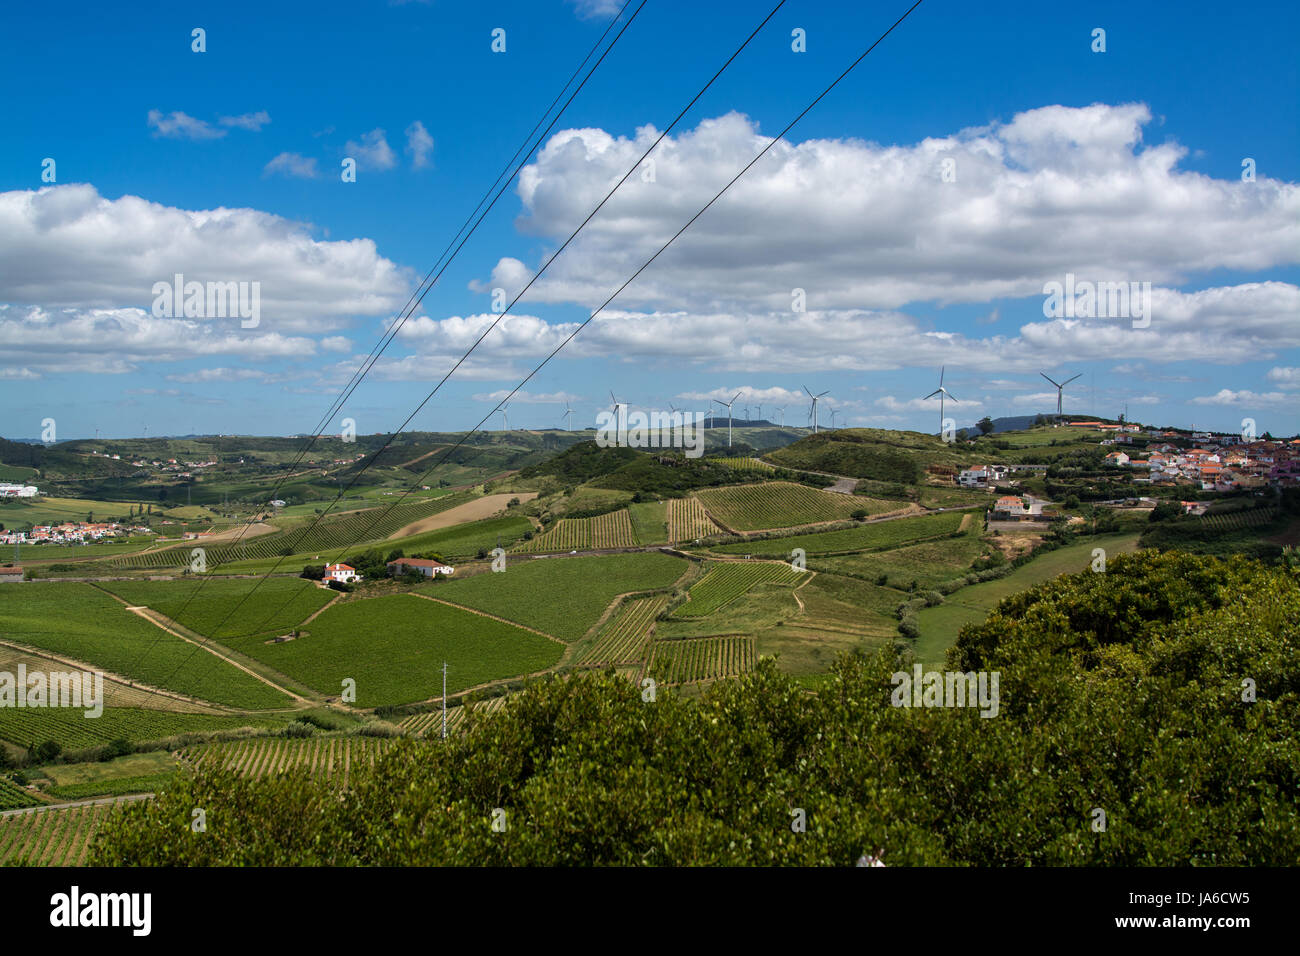 Torres Vedras Portugal. 18 May 2017.View of the agriculture fields inTorres Vedras.Torres Vedras, Portugal. photography - Stock Image